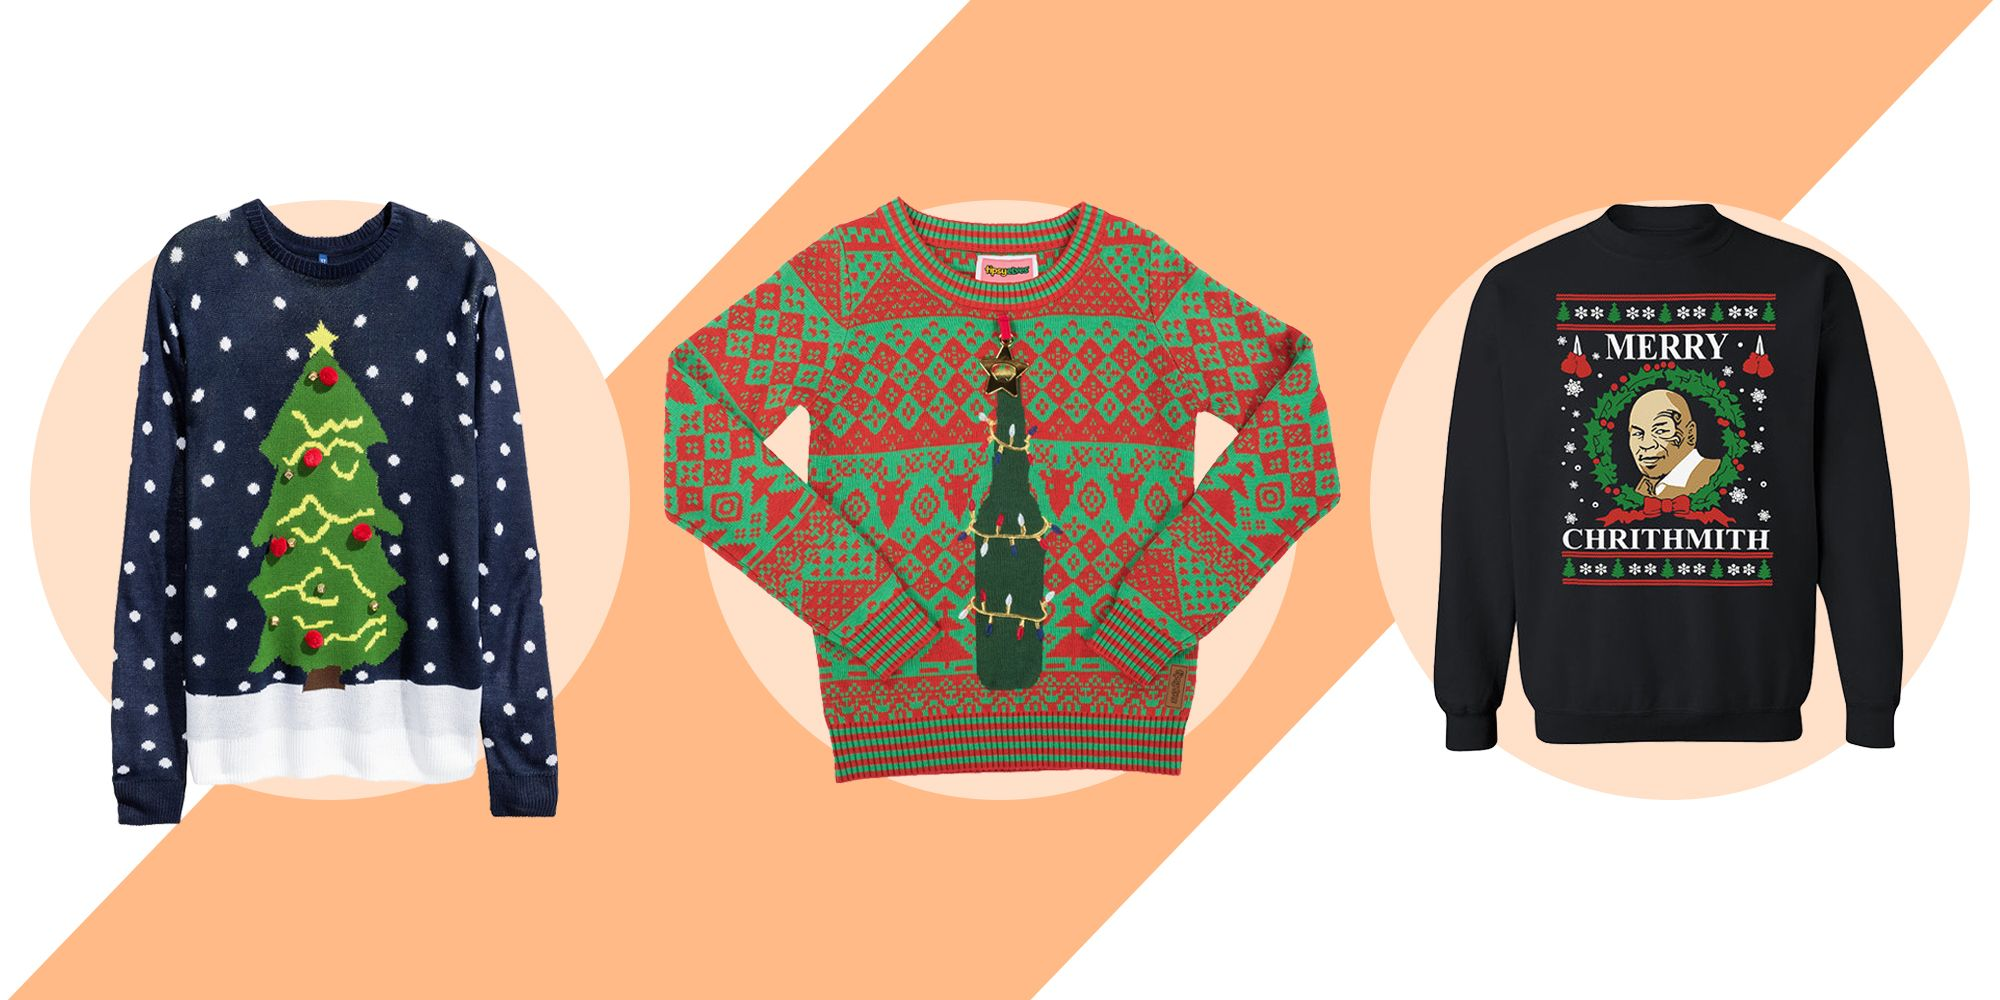 10 Best Ugly Christmas Sweaters of 2017 - Tacky Holiday Sweater Ideas